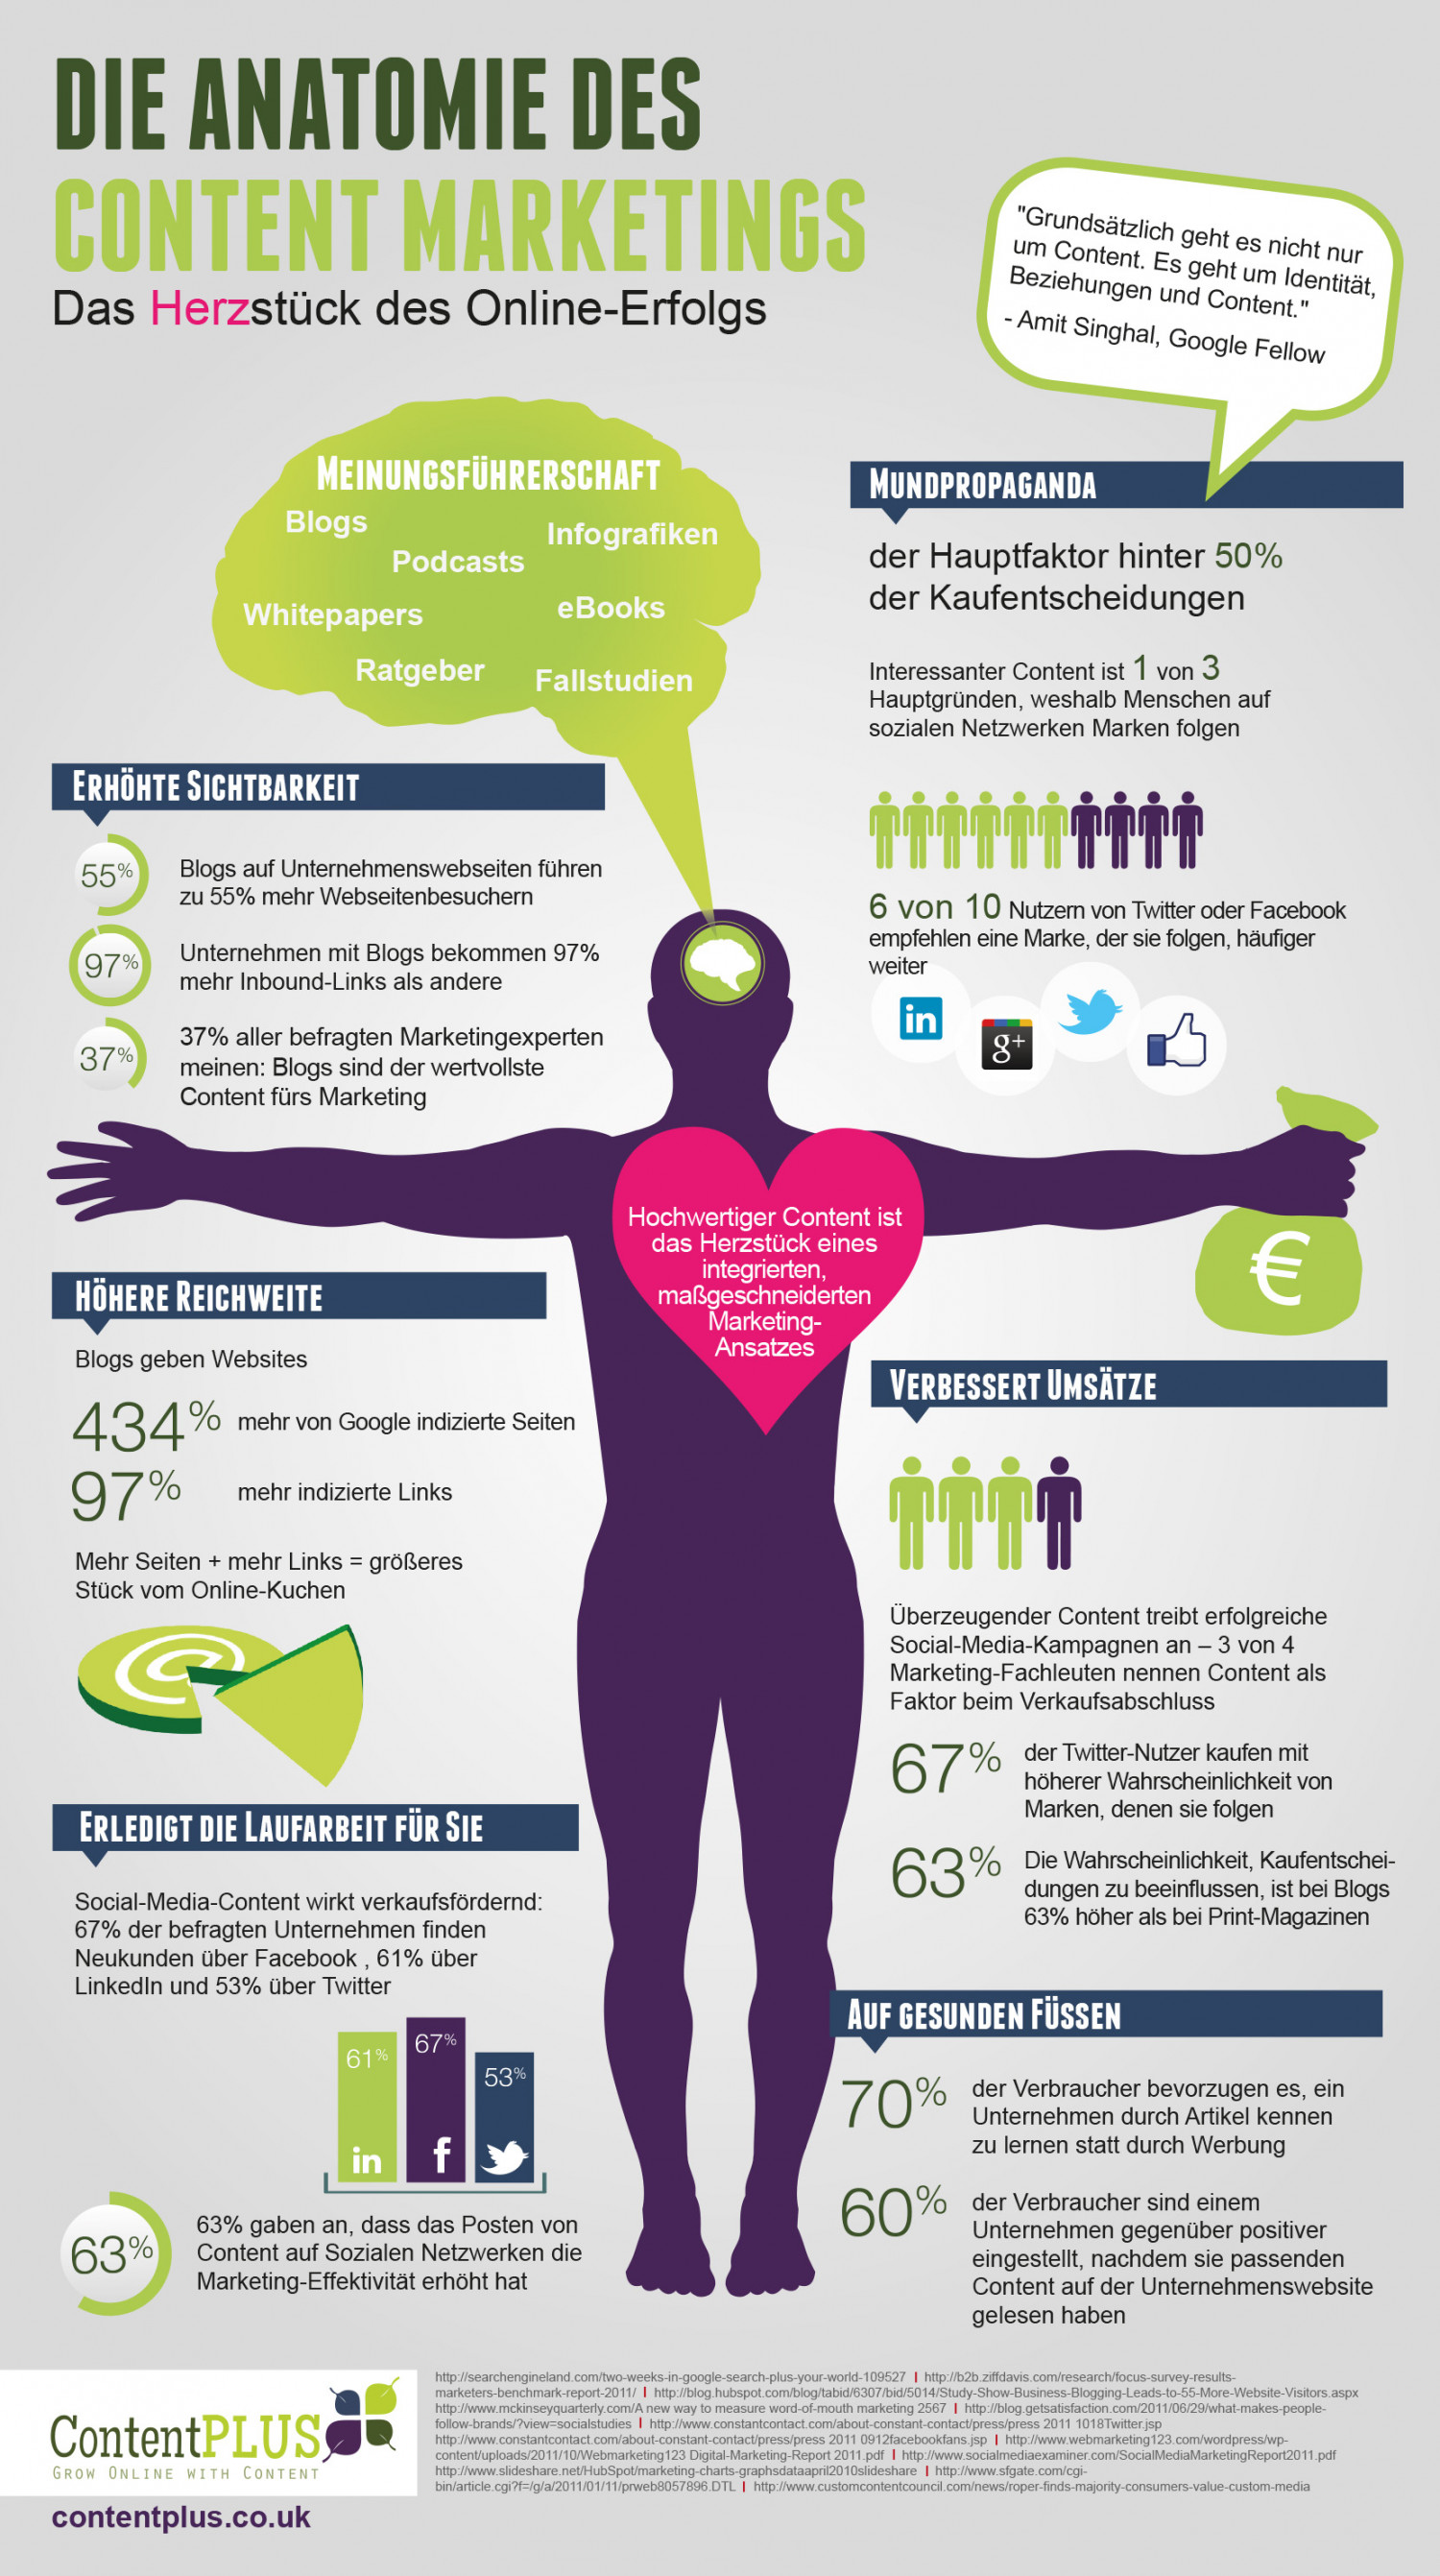 Die Anatomie Des Content Marketings Infographic